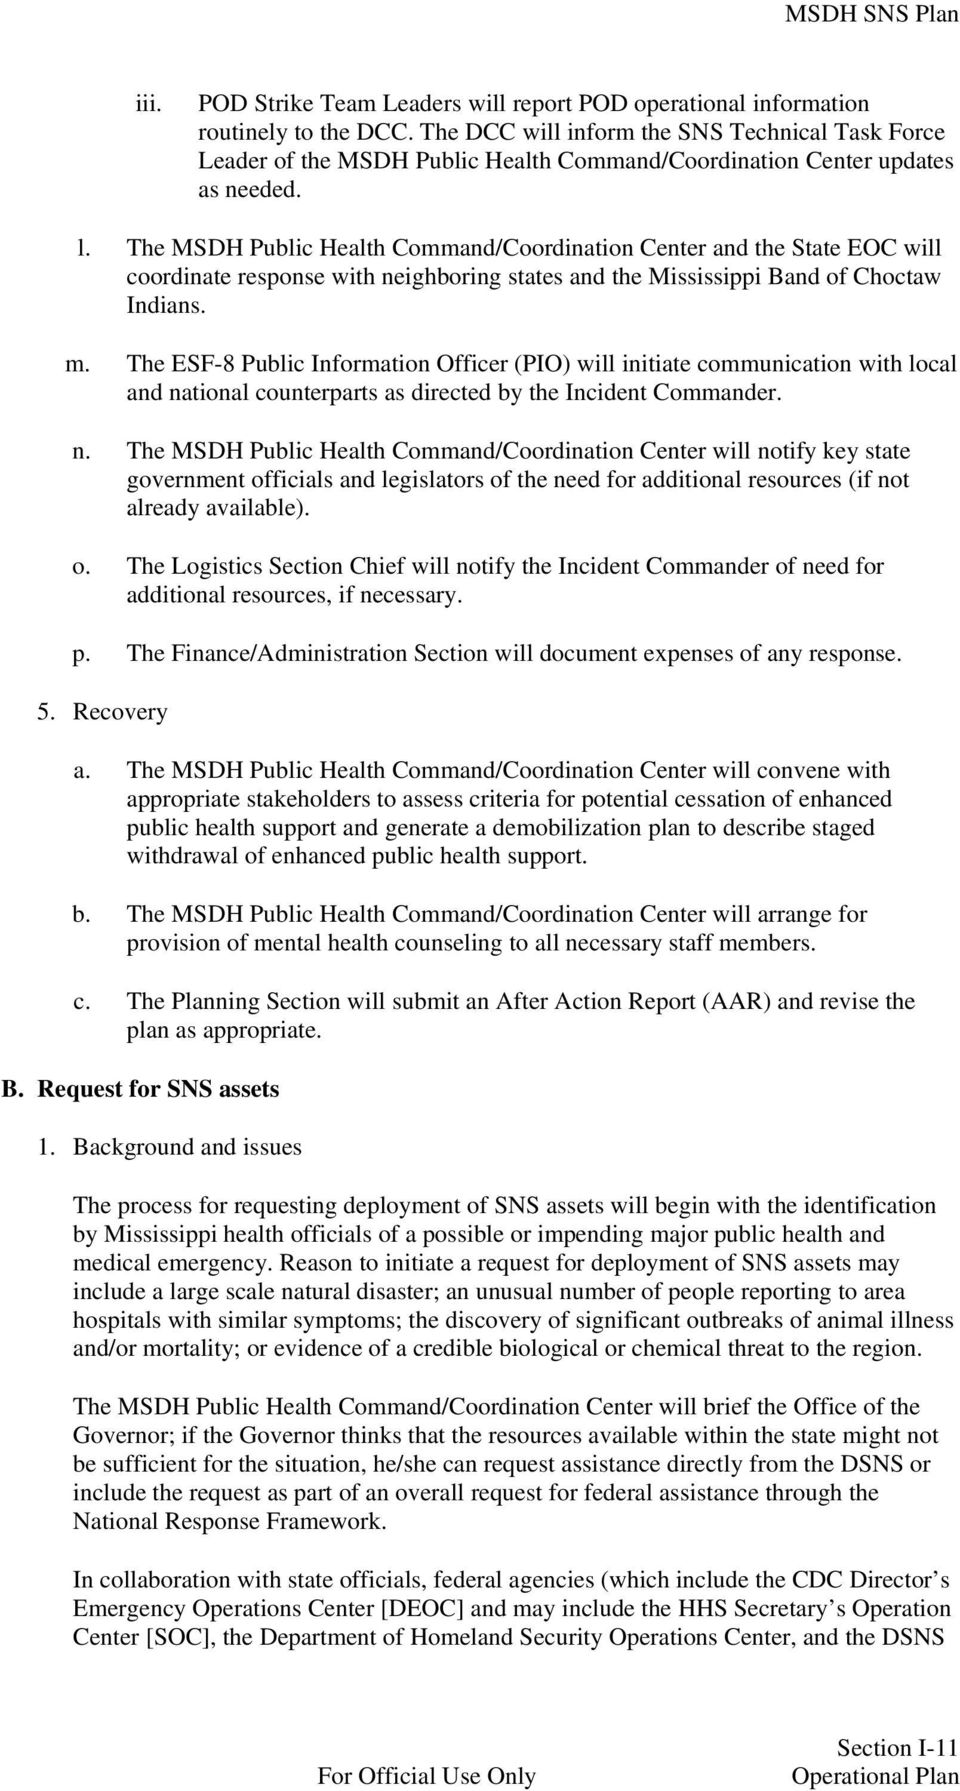 The MSDH Public Health Command/Coordination Center and the State EOC will coordinate response with neighboring states and the Mississippi Band of Choctaw Indians. m.